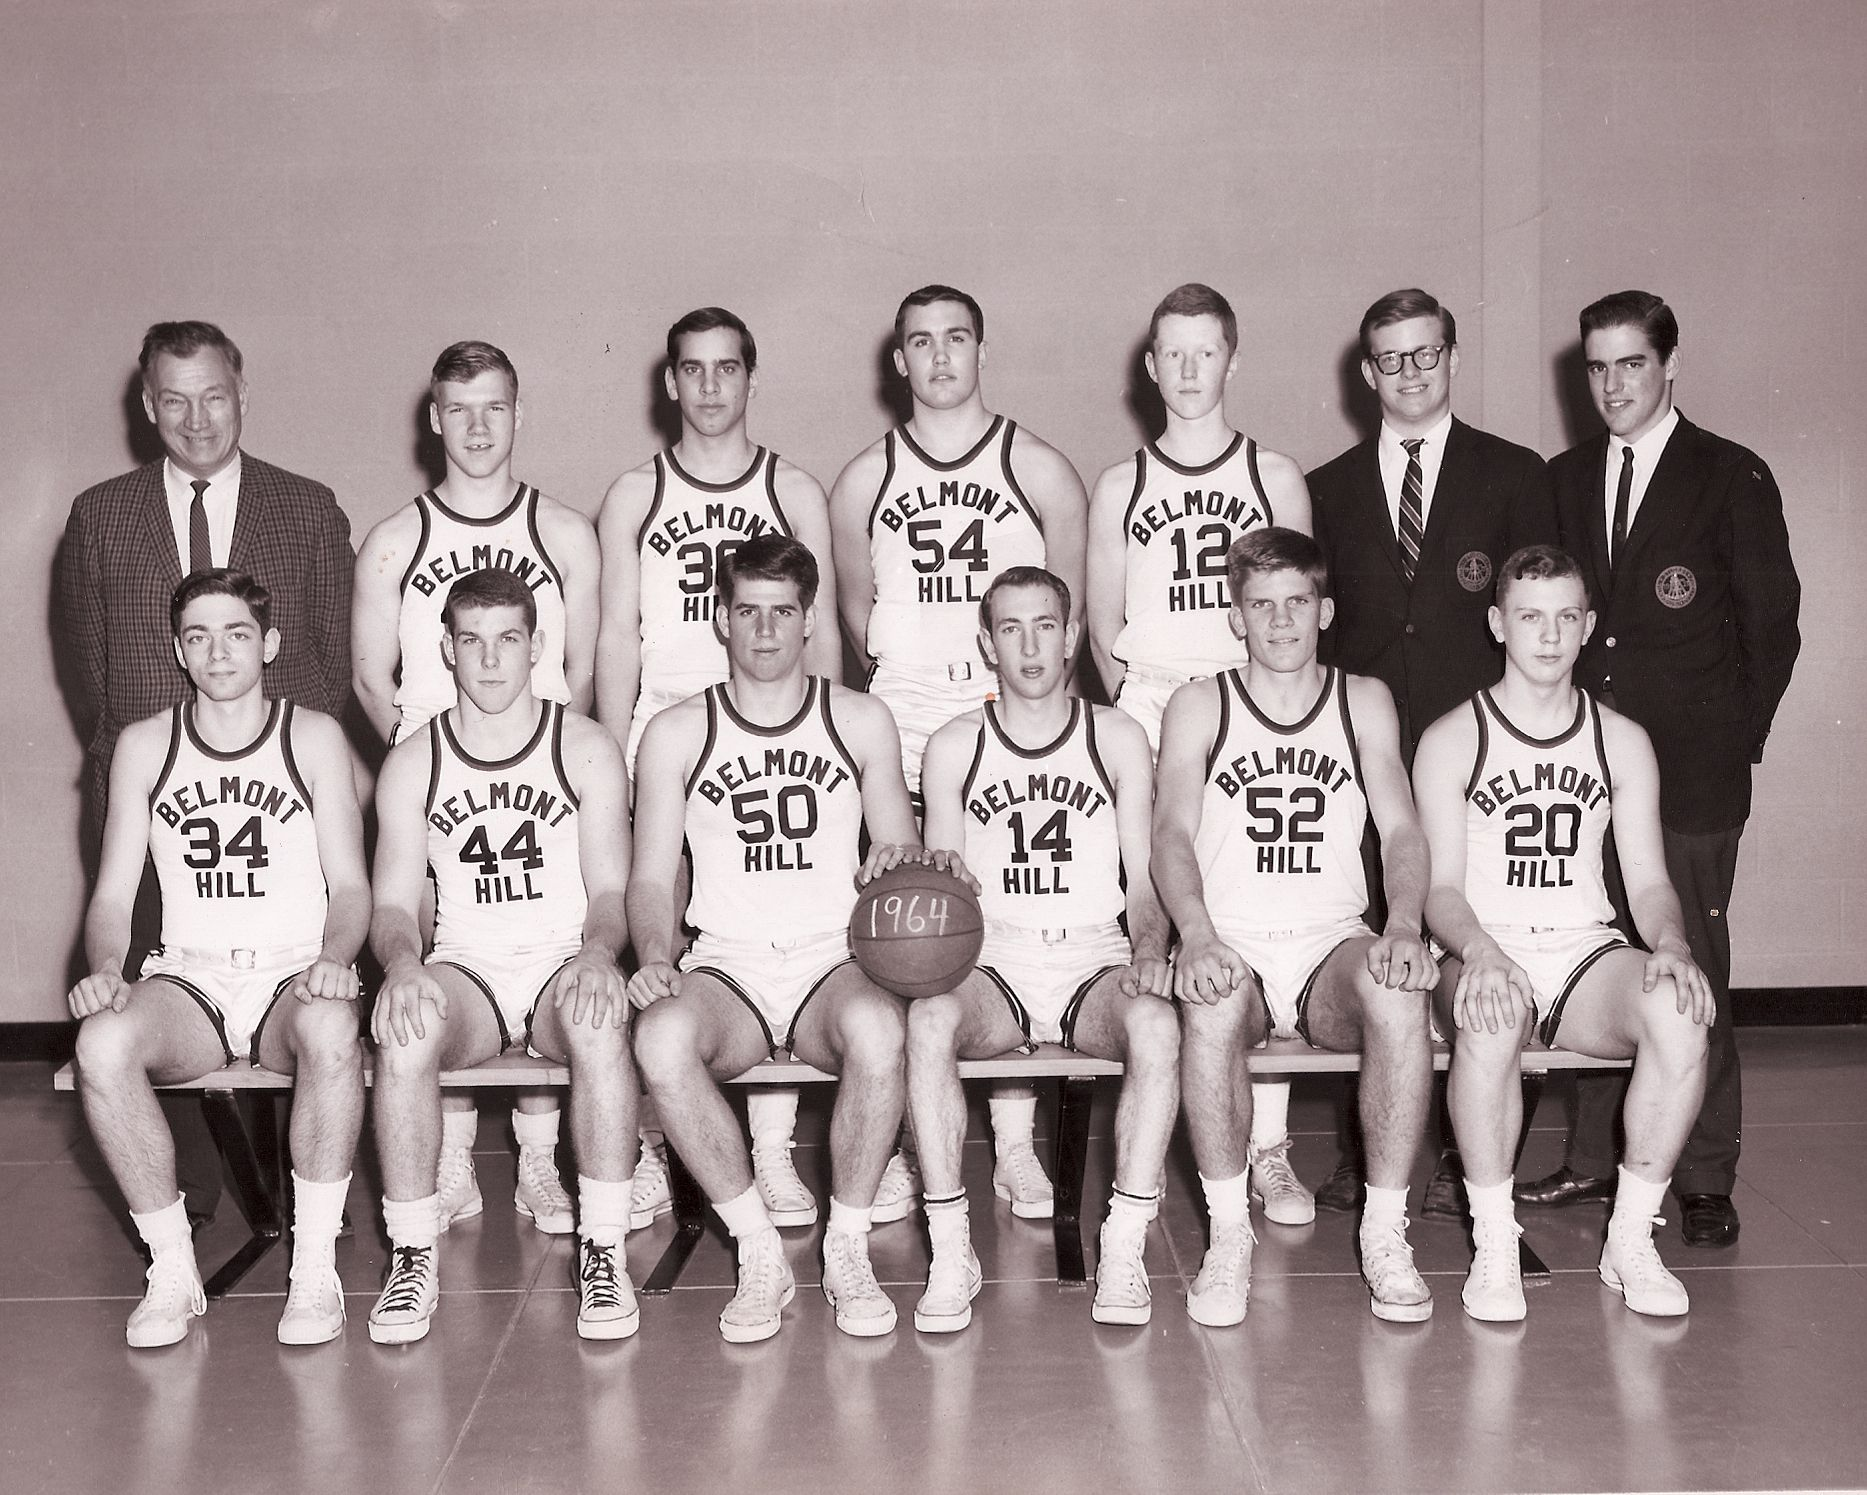 First Row: Green, Brown, Shapiro, Bergen, R. Goldkamp, Nelson Second Row: Mr. Croke, Croke, Wyner, Amon, J. Fisher, Carr, Warren